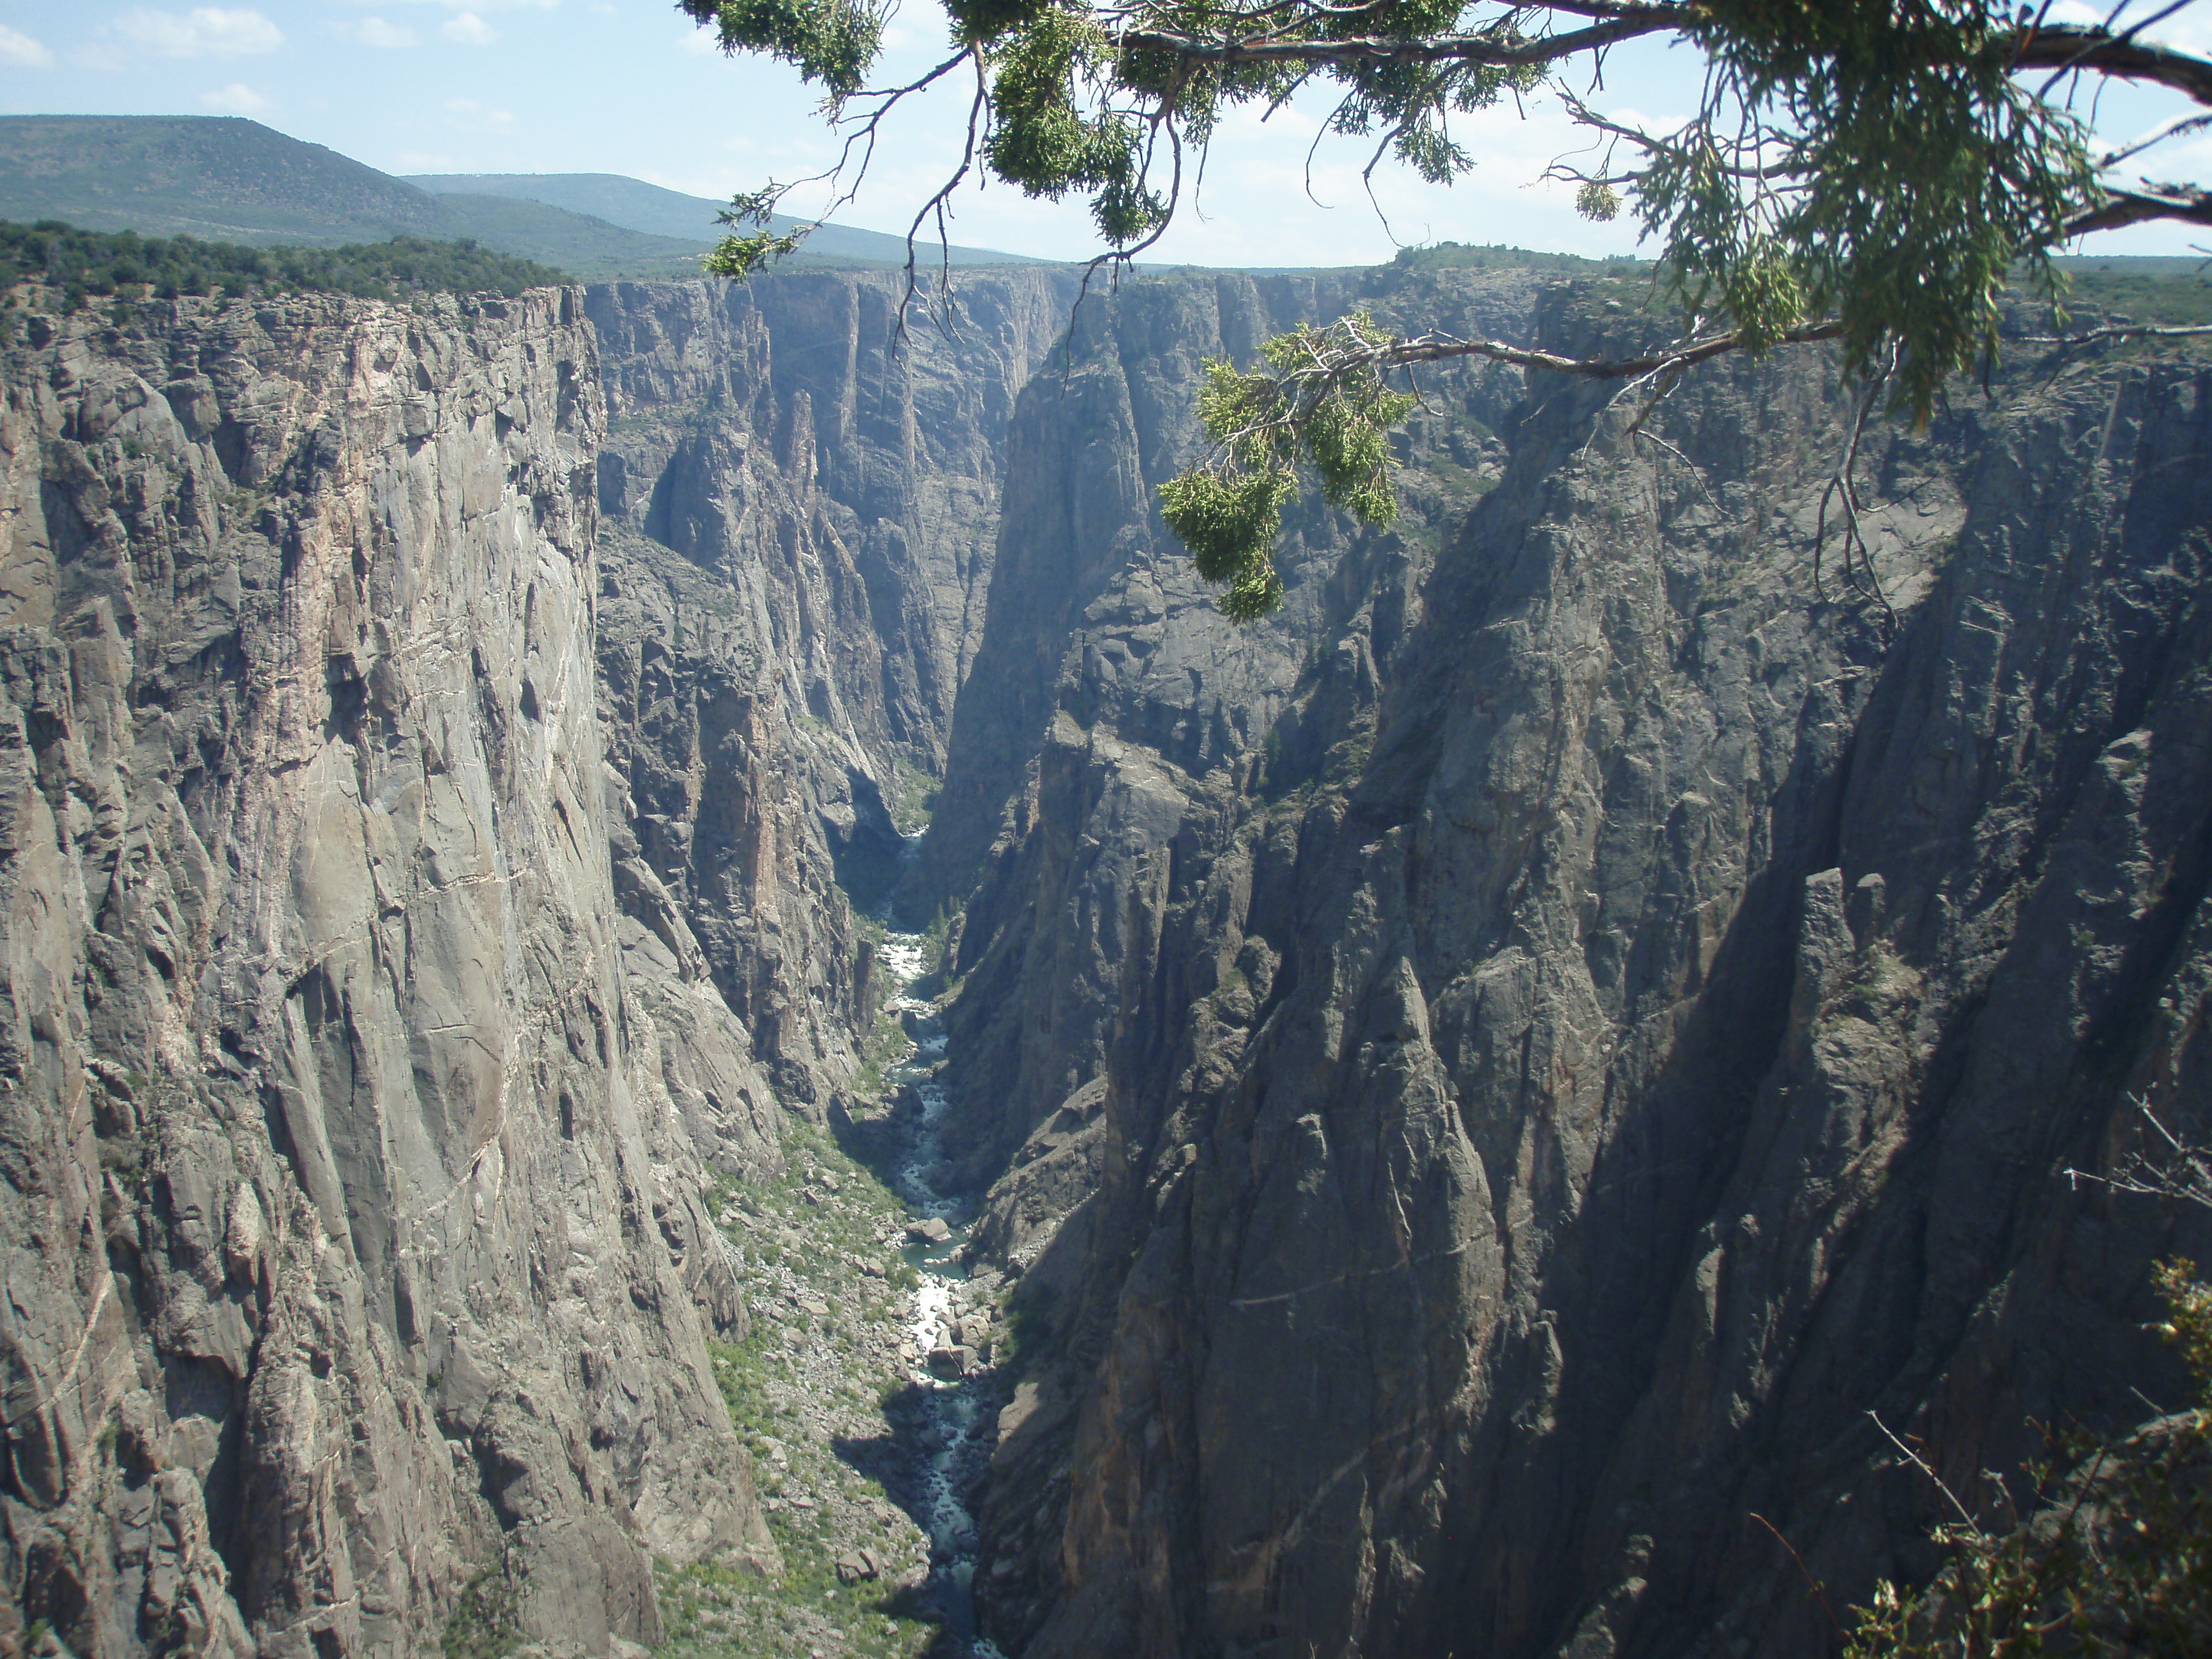 A closer look at Inspiration Point at Black Canyon of the Gunnison